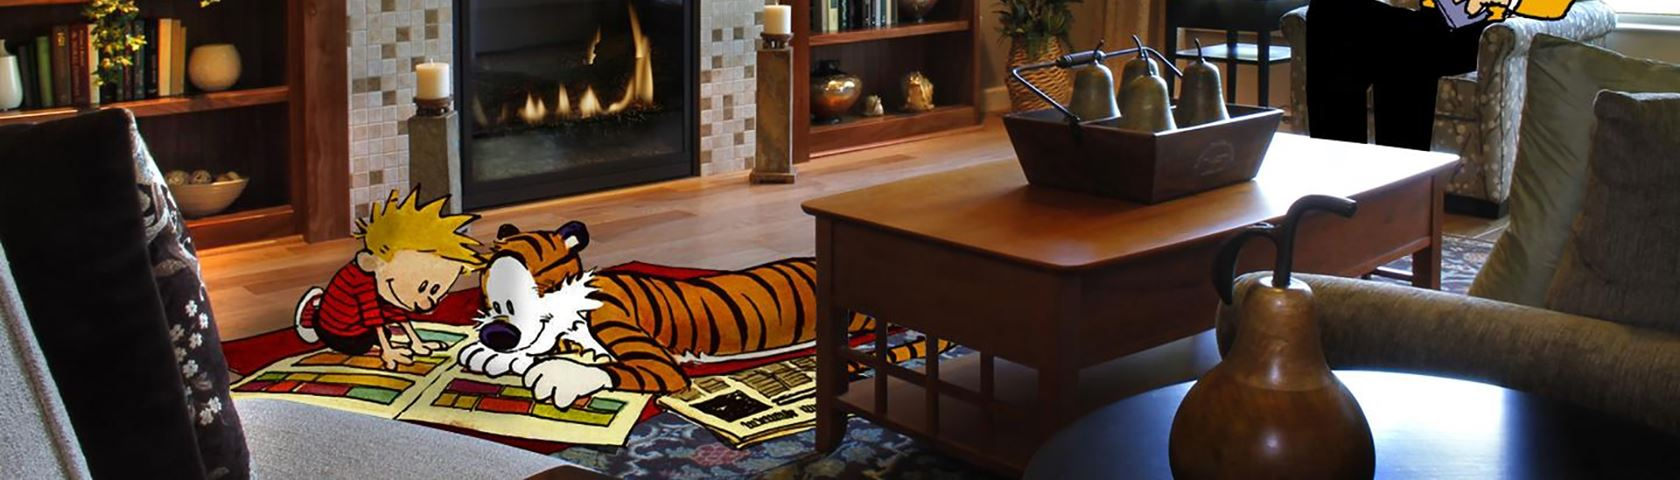 Calvin and Hobbes in the Den